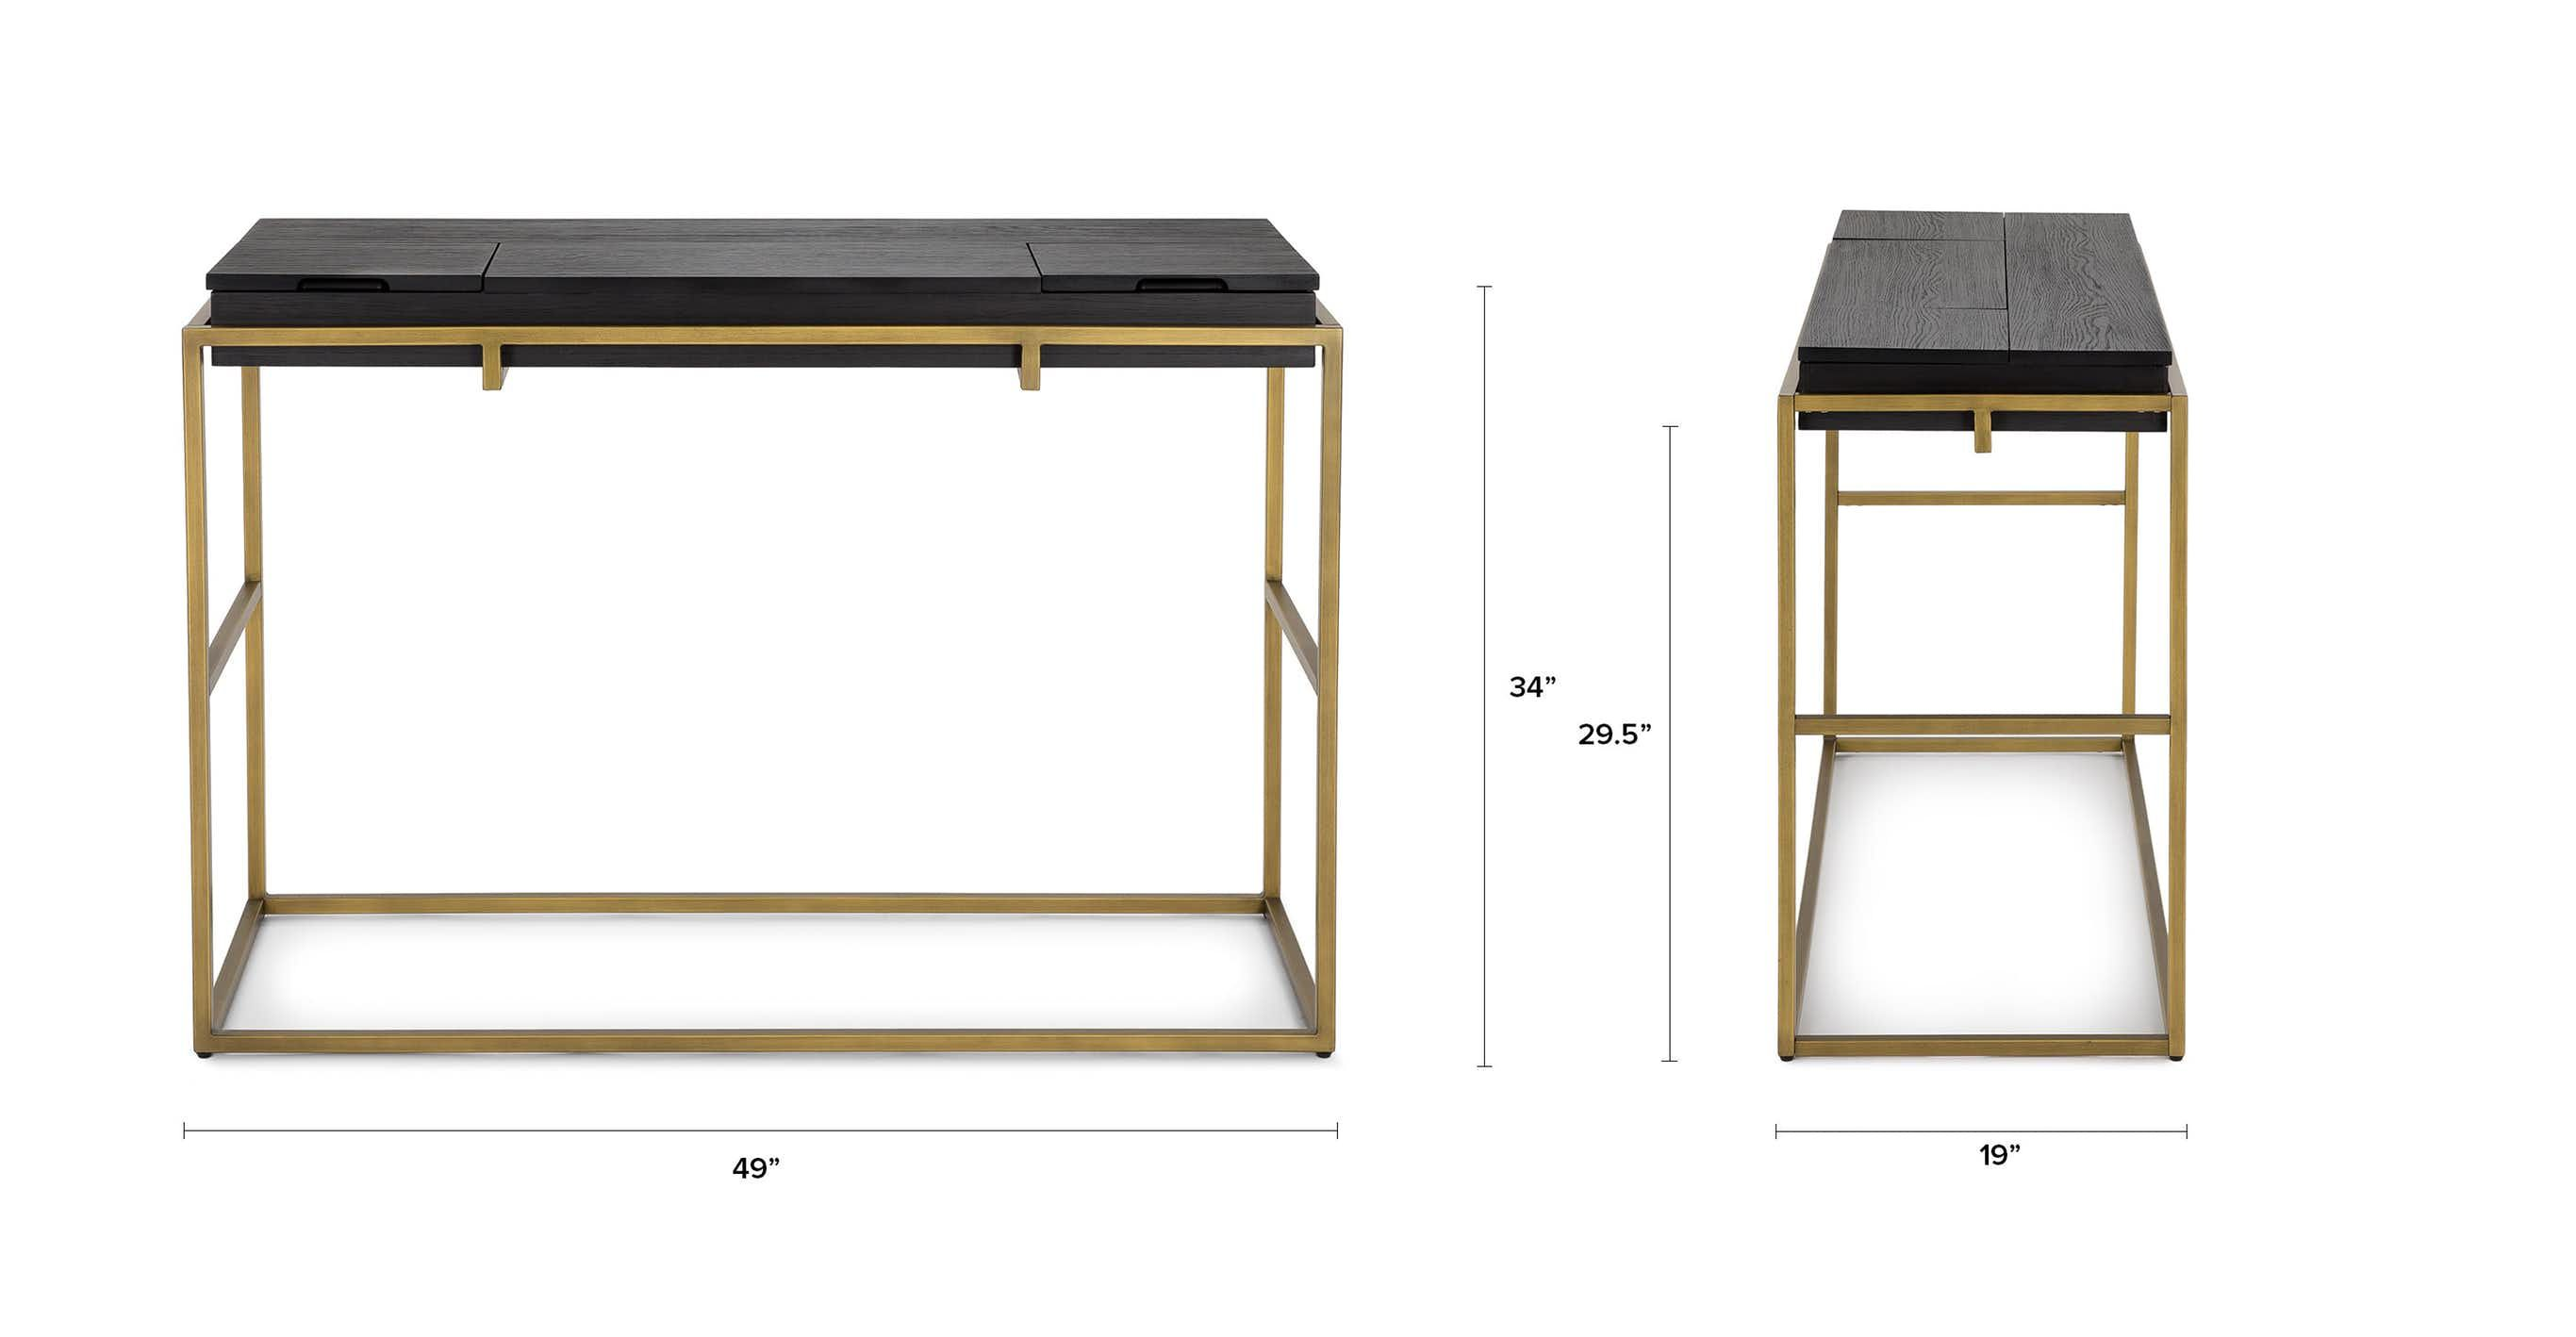 Cubic Proportions The Oscuro Console Features Natural Wood Grain Juxtaposed Against Brush Mid Century Modern Console Table Modern Console Tables Console Table